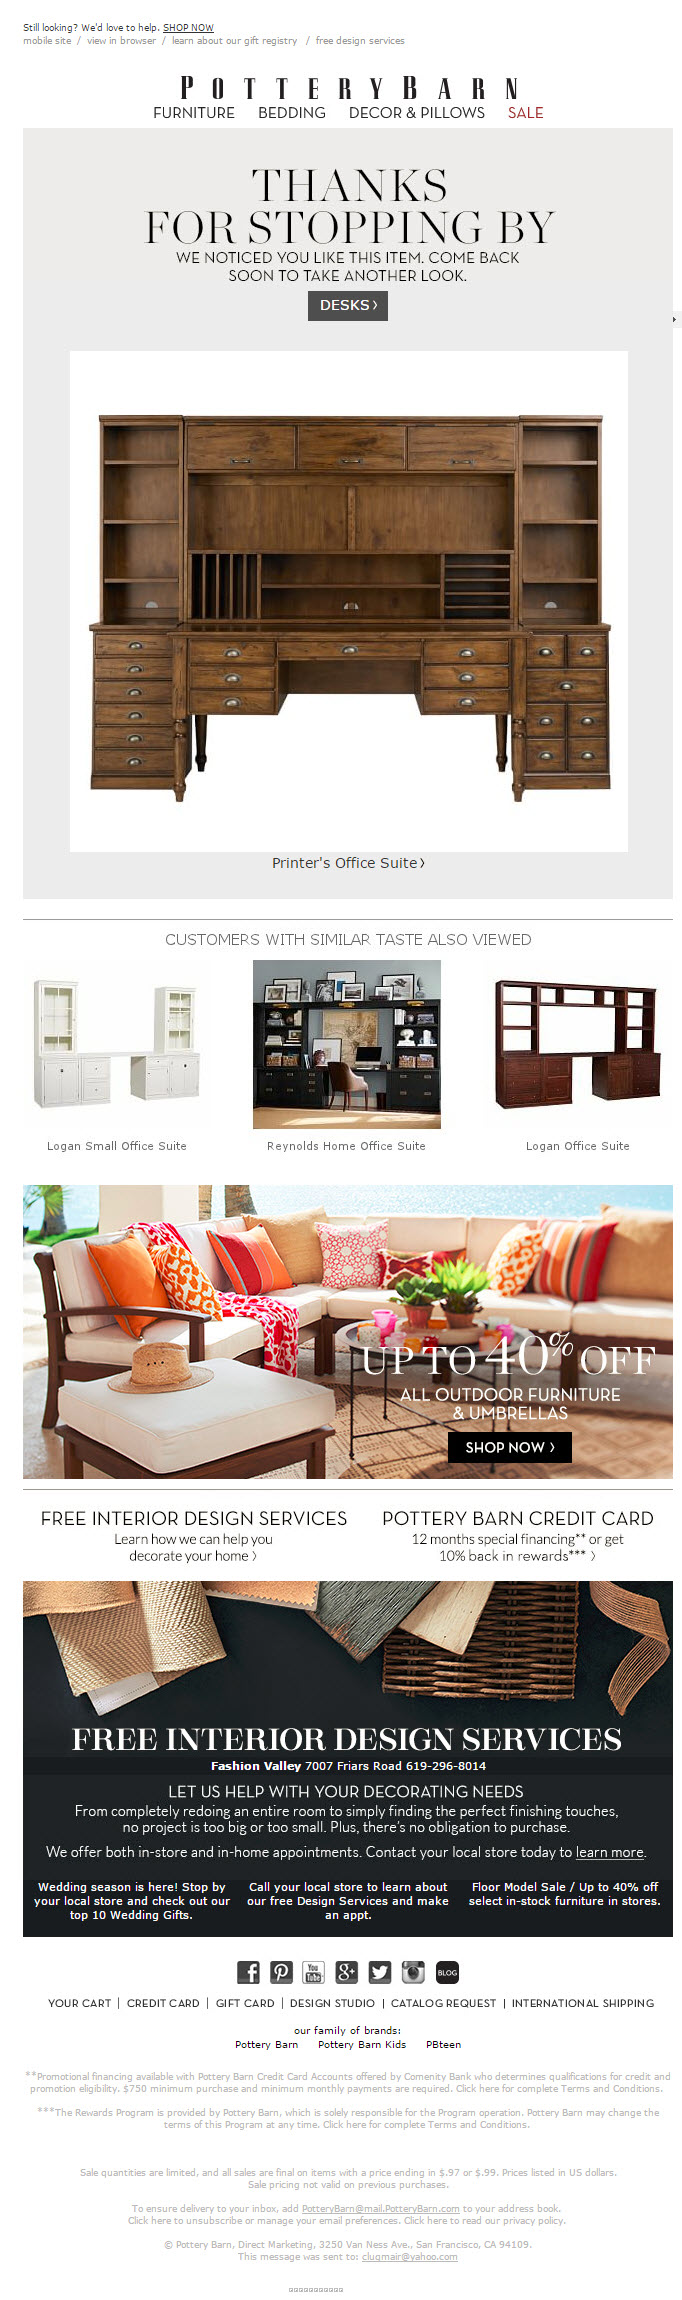 Browse abandon for pottery barn | Abandon Cart + Triggers ...